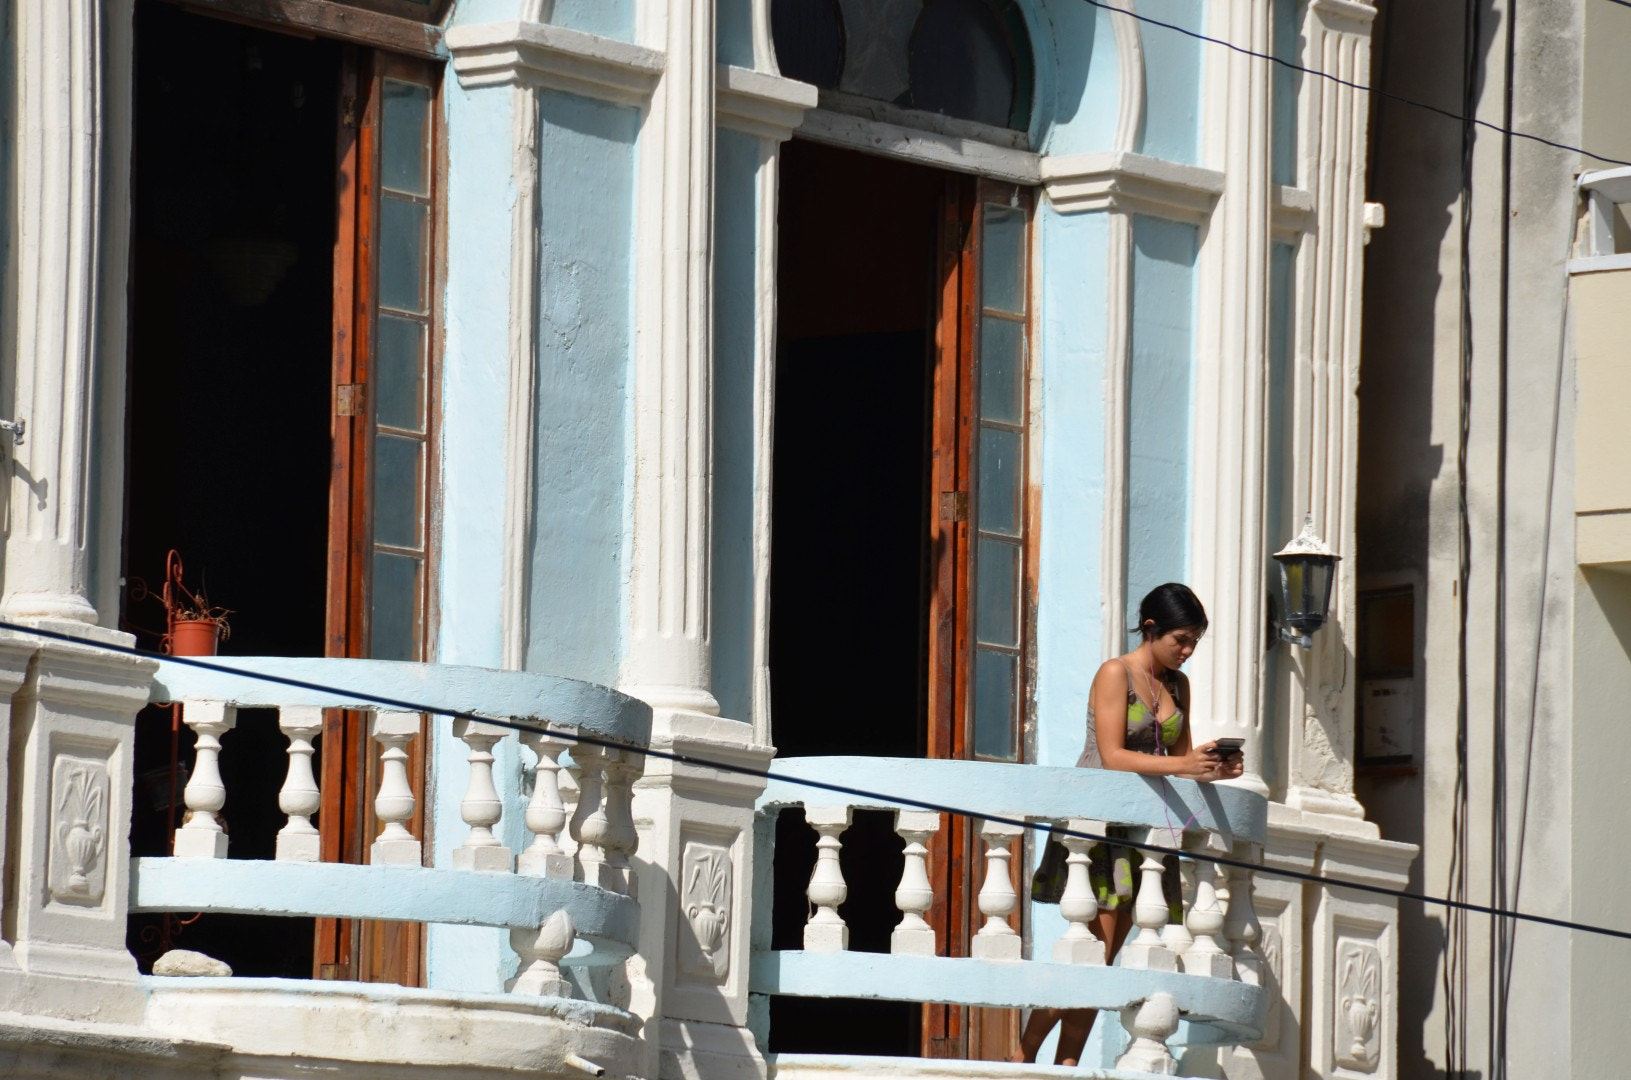 Photograph Girl on balcony by Alexander Ortweiler on 500px